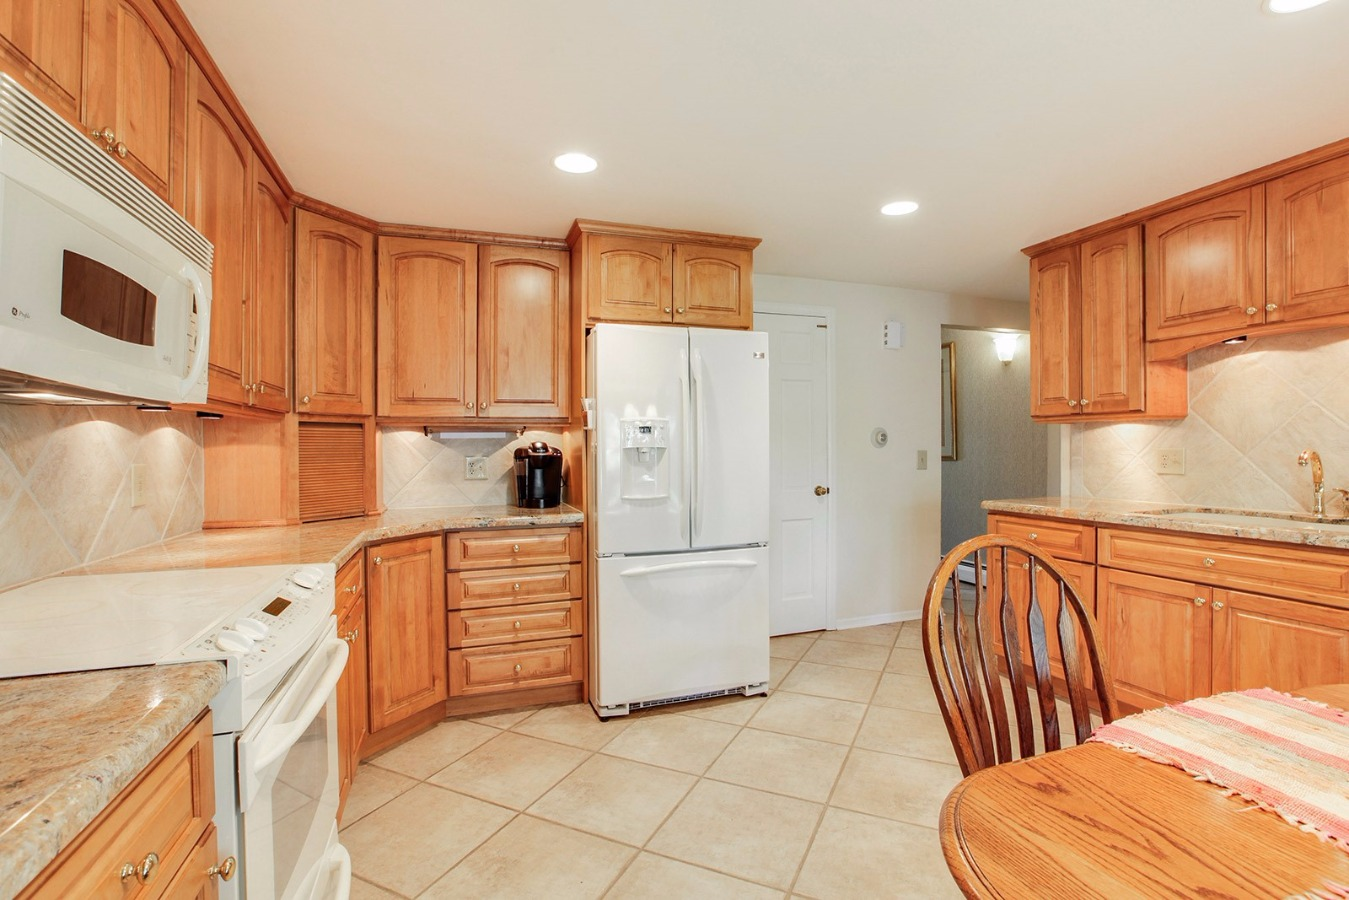 Crystal center-cut maple cabinets, granite counter